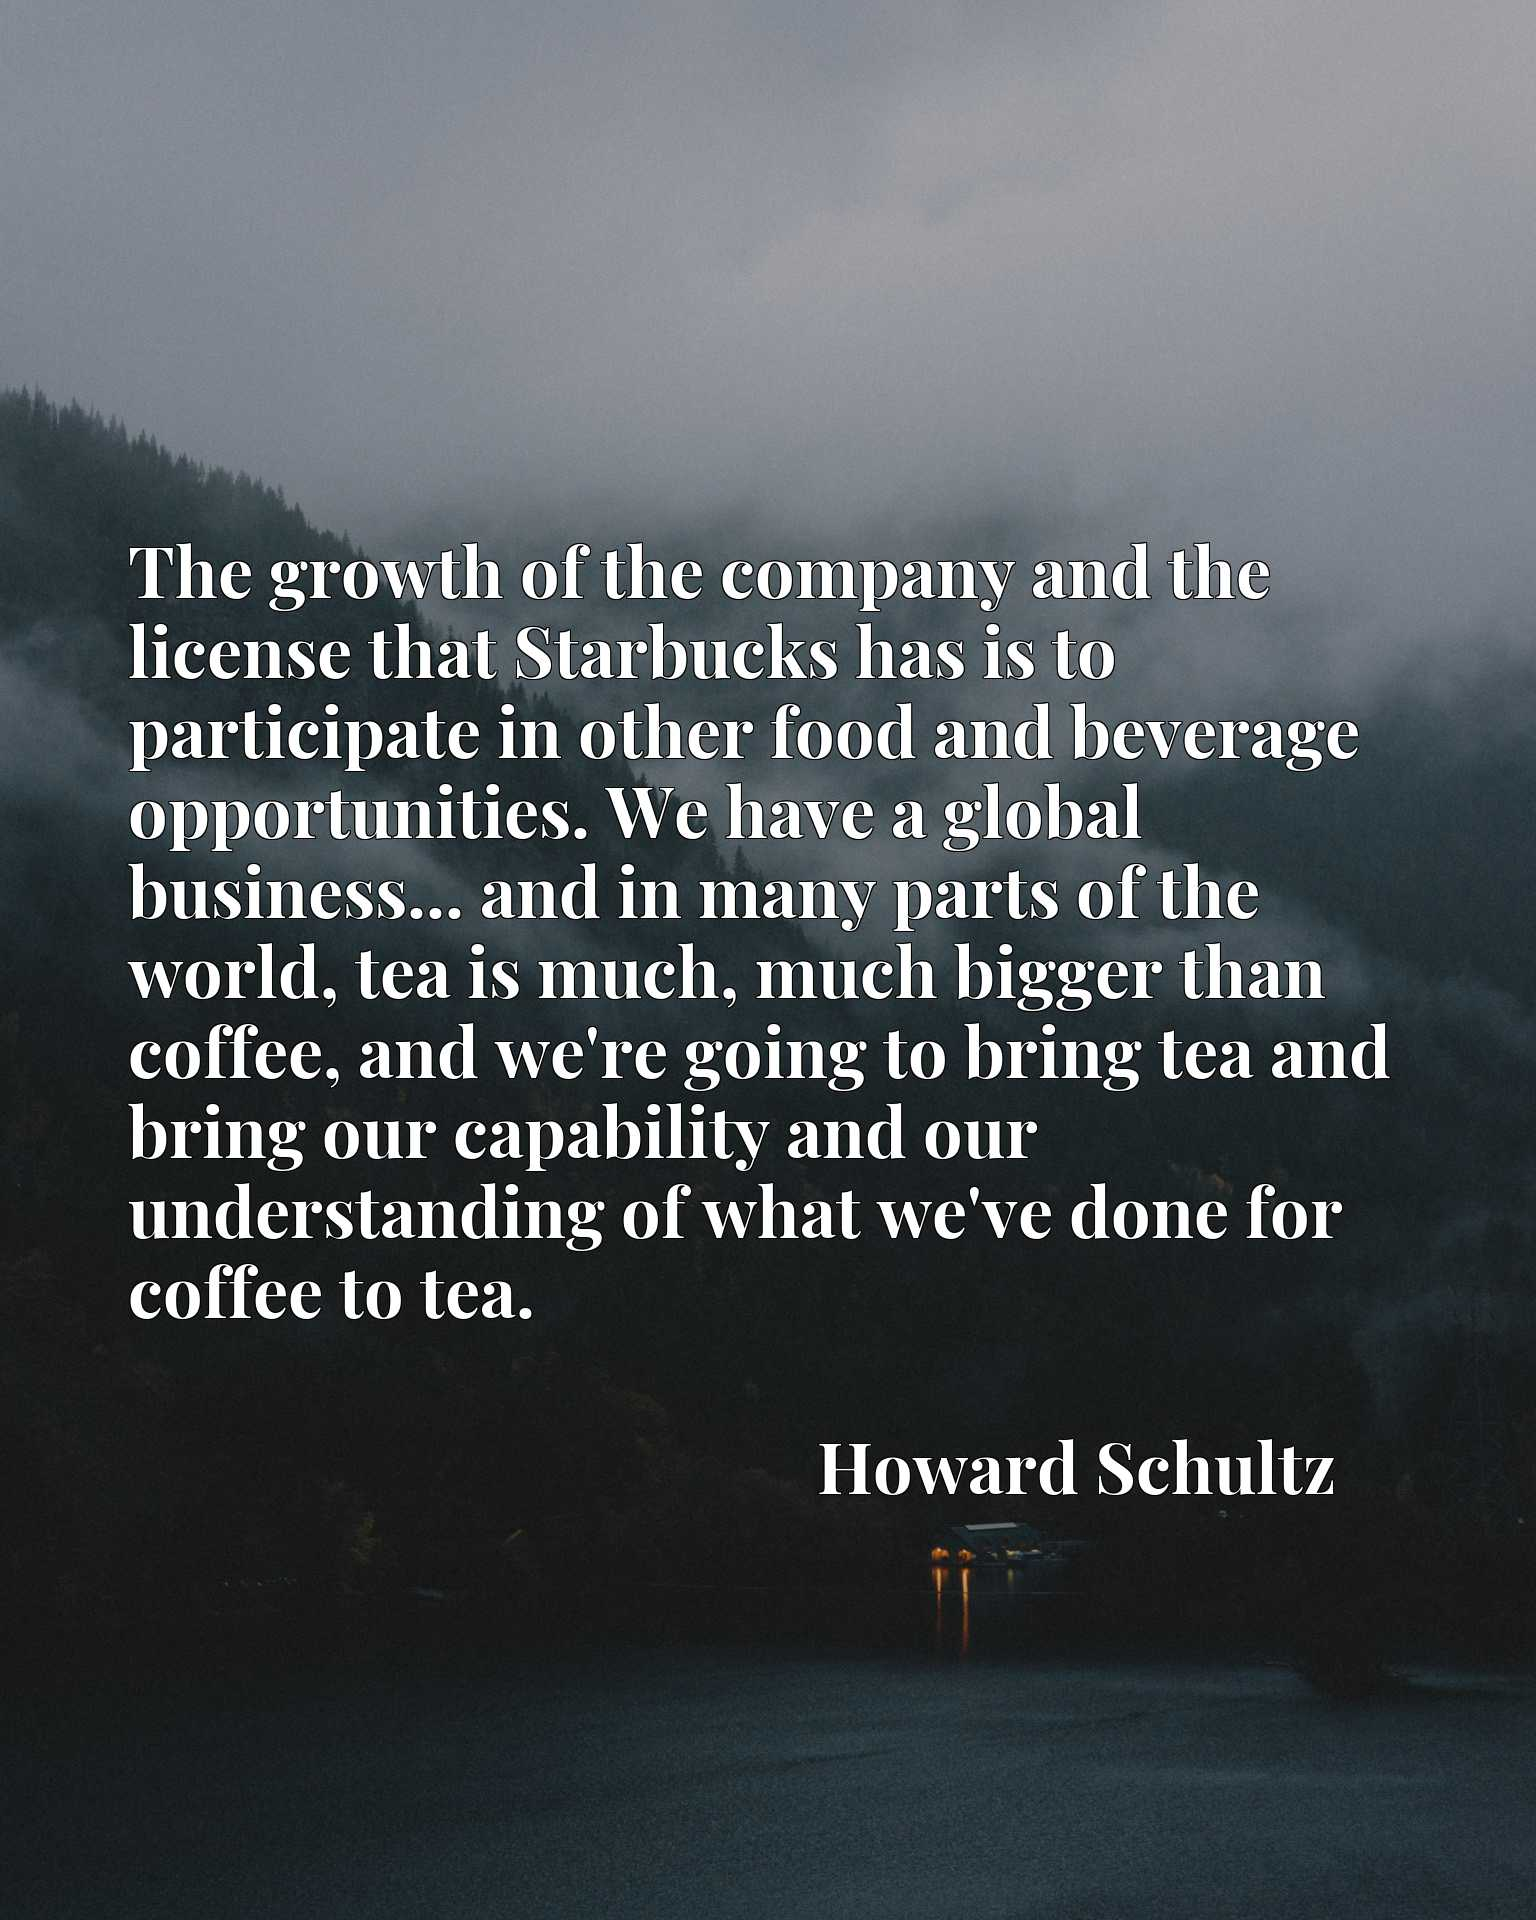 The growth of the company and the license that Starbucks has is to participate in other food and beverage opportunities. We have a global business... and in many parts of the world, tea is much, much bigger than coffee, and we're going to bring tea and bring our capability and our understanding of what we've done for coffee to tea.